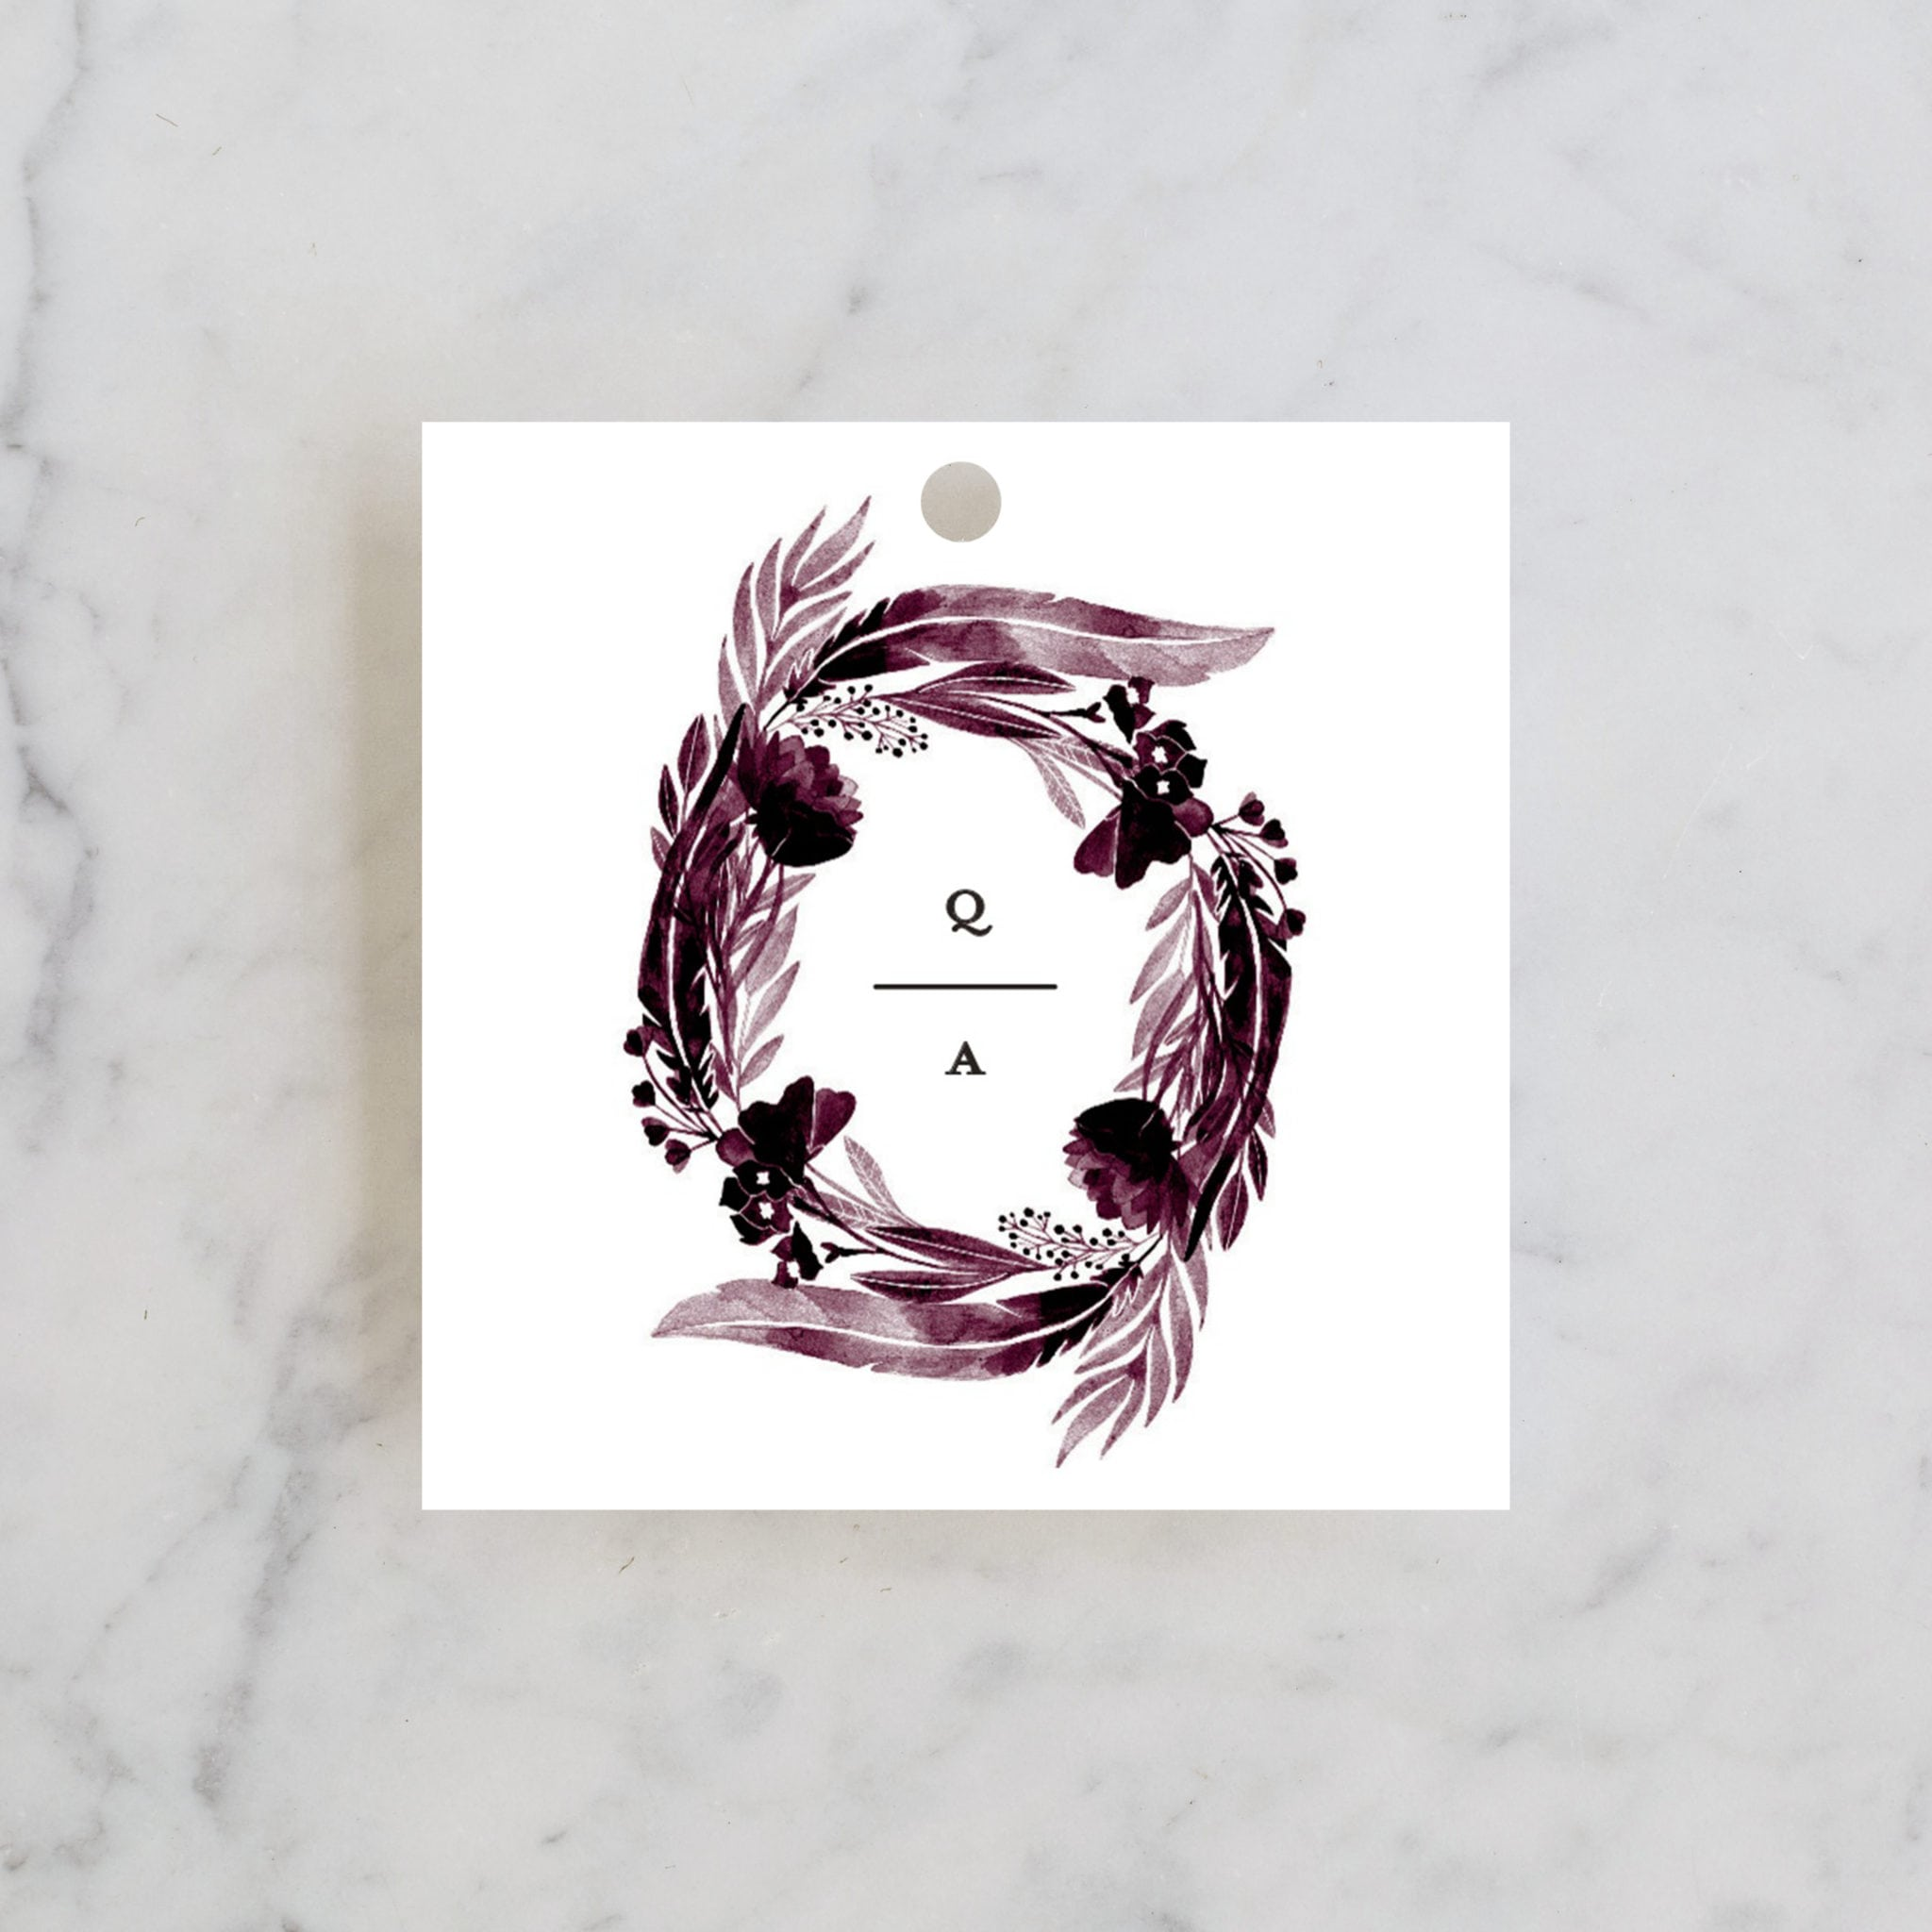 a wedding favor tag with a plum colored father wreath design and the letters Q|A